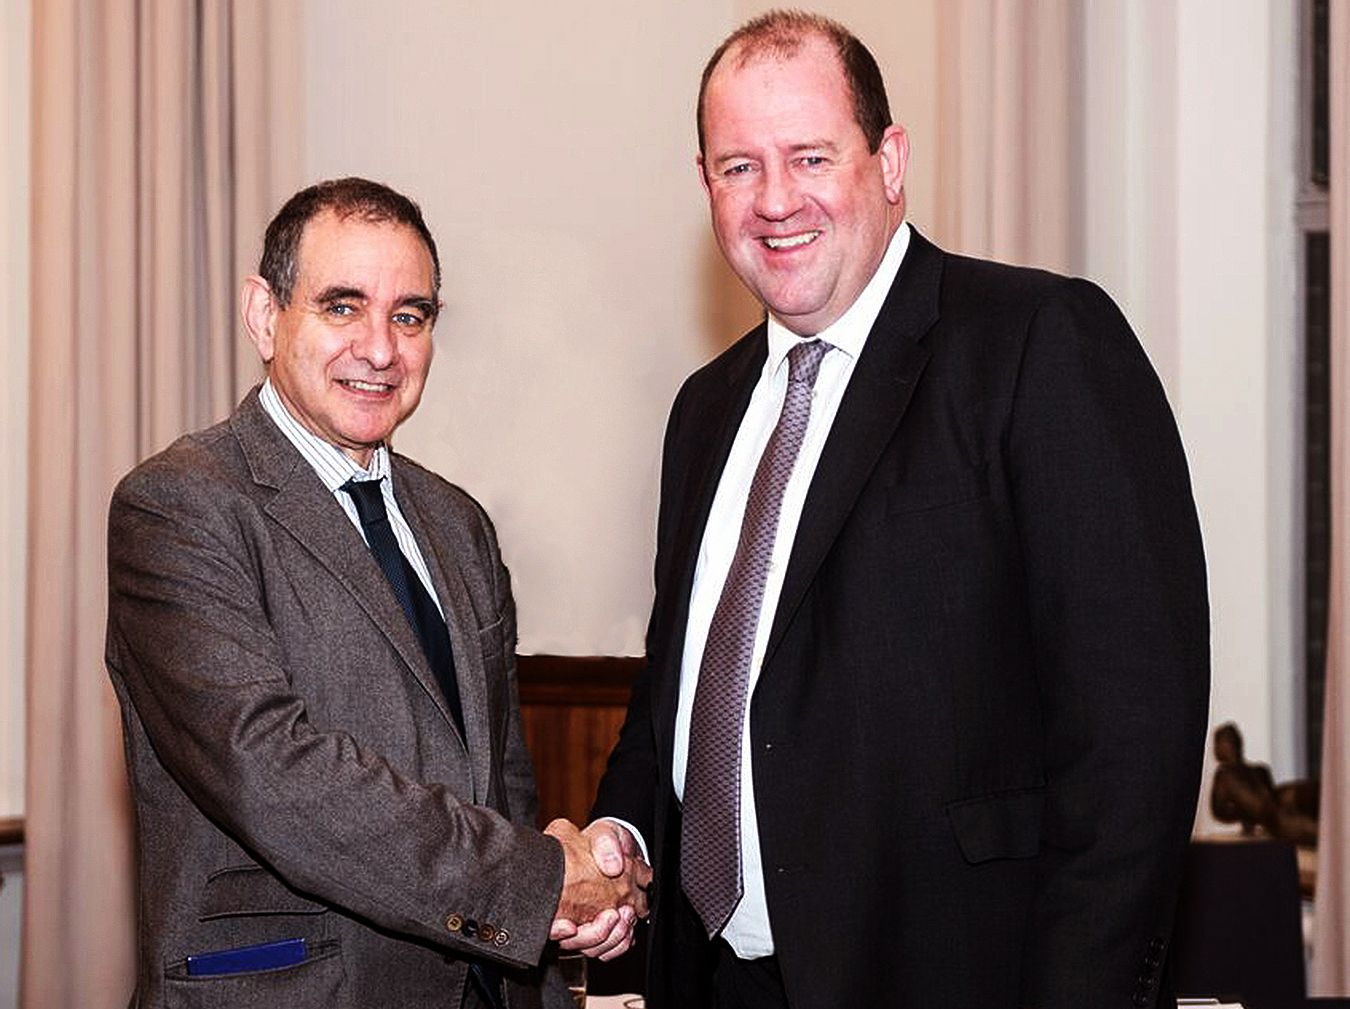 Kingston University Vice-Chancellor Professor Julius Weinberg shaking hands with Amey Plc Chief Executive Mell Ewell.